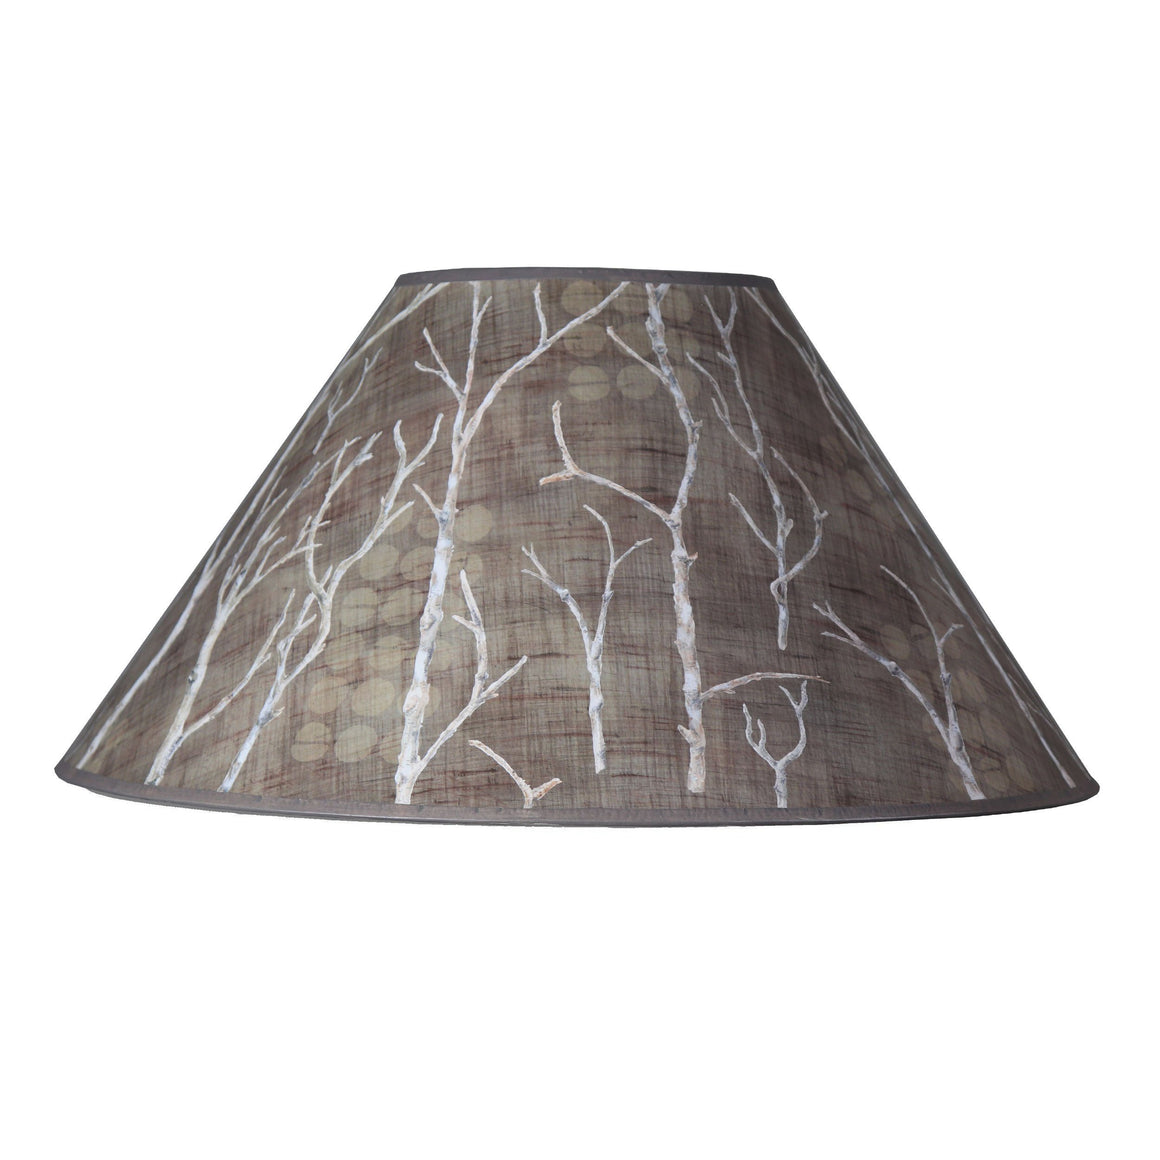 Large Conical Lamp Shade in Twigs